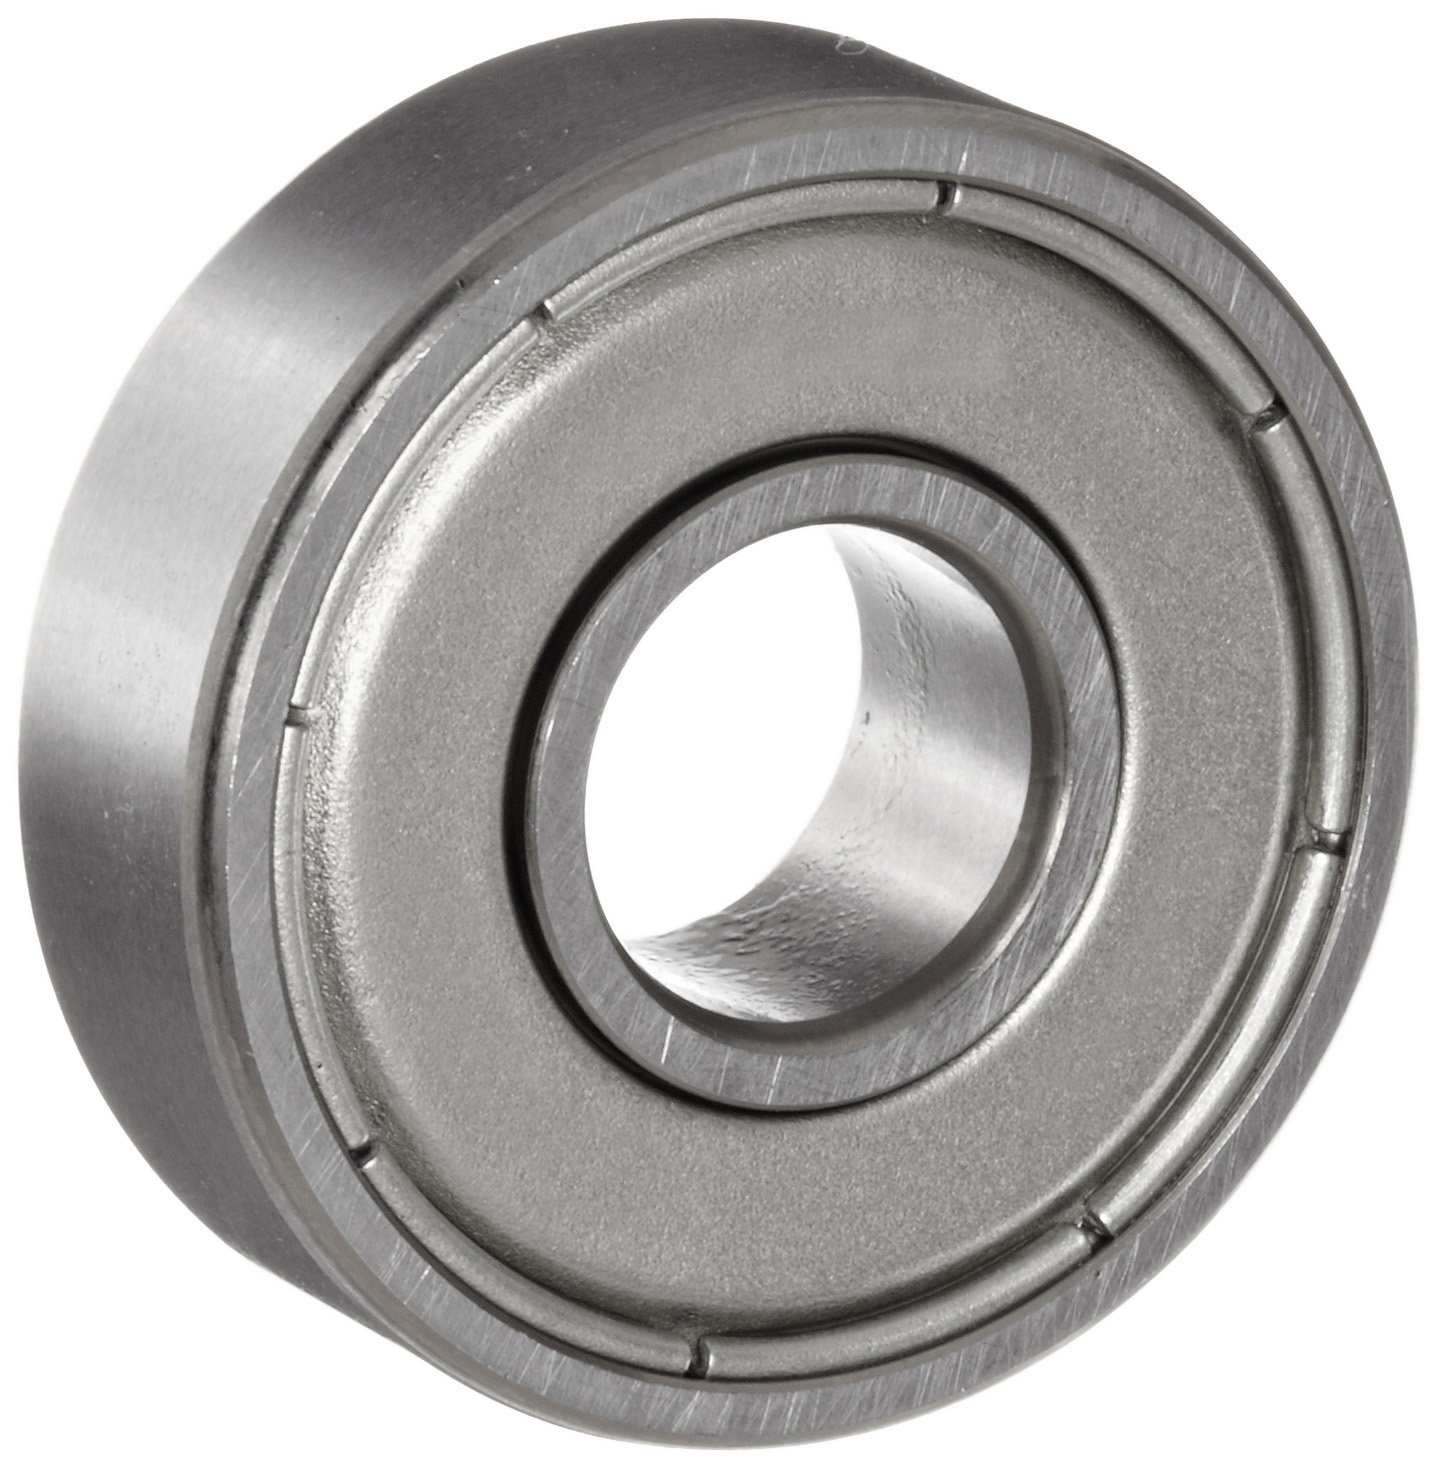 NSK 626Z Deep Groove Ball Bearing, Single Row, Single Shield, Pressed Steel Cage, Normal Clearance, Metric, 6mm Bore, 19mm OD, 6mm Width, 32000rpm Maximum Rotational Speed, 885N Static Load Capacity, 2340N Dynamic Load Capacity